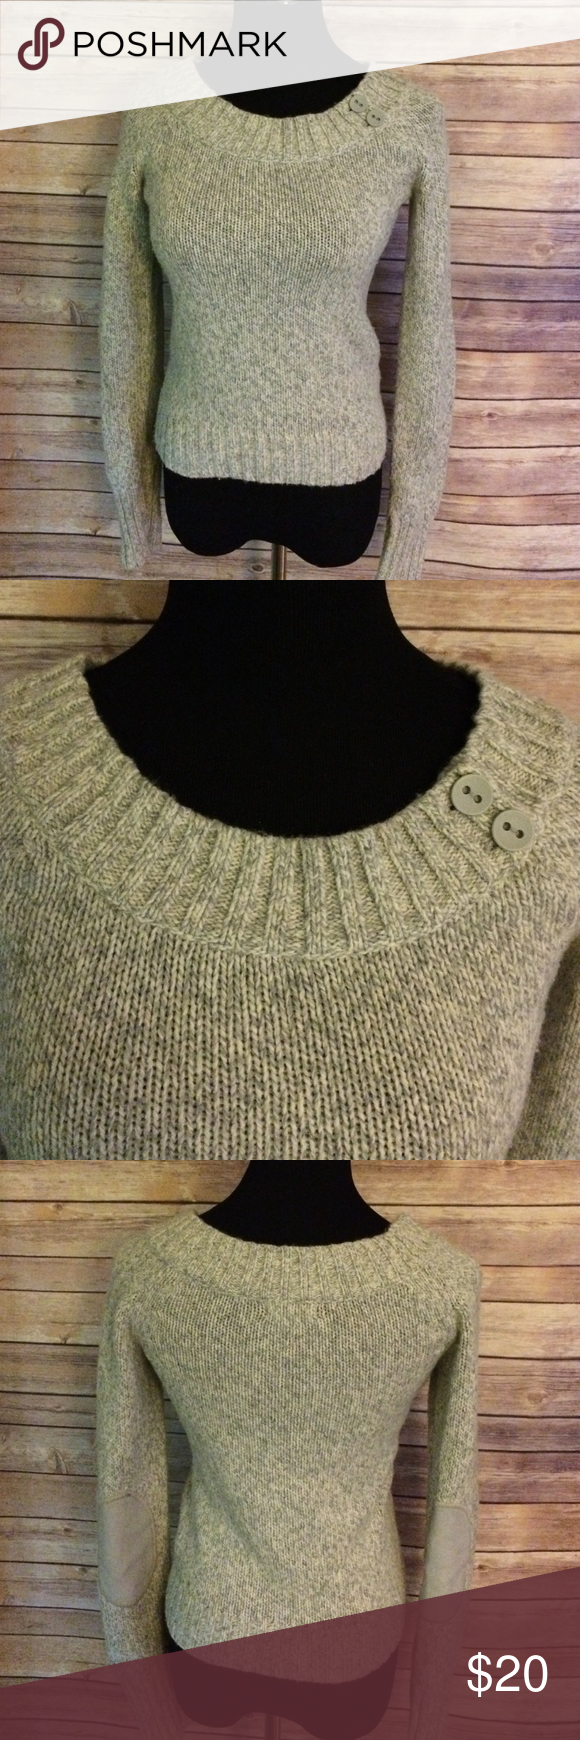 """Old Navy """"perfect fit"""" sweater Old Navy perfect fit sweater in small. Heather grey with patch elbows. Great condition and super soft! 40% acrylic 30% nylon 20% lambs wool 10% angora rabbit hair Old Navy Sweaters Crew & Scoop Necks"""